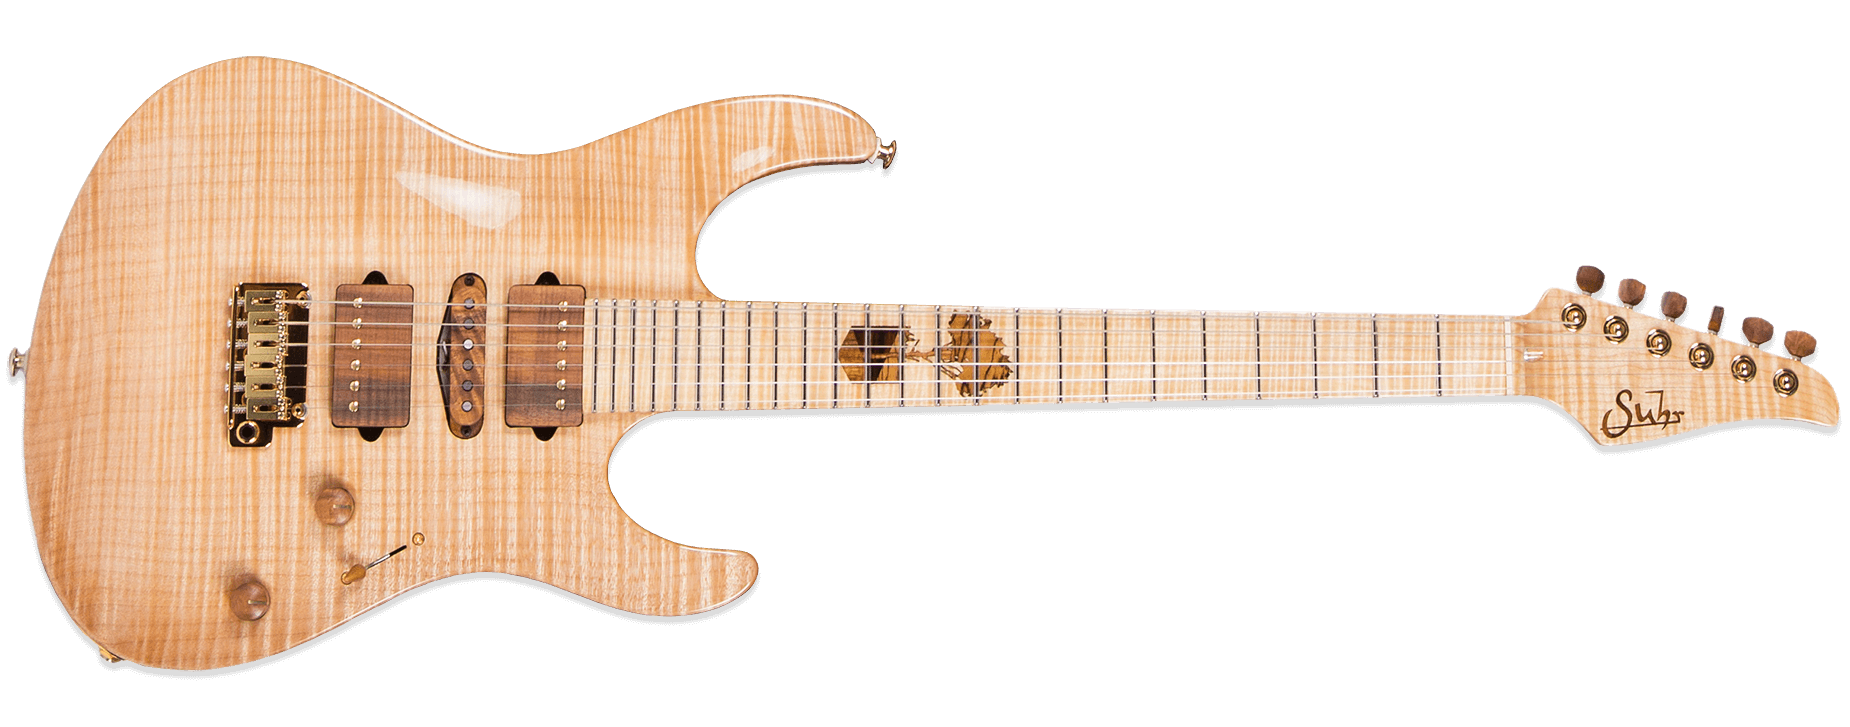 Suhr Trilogy Collection 2016 No.3